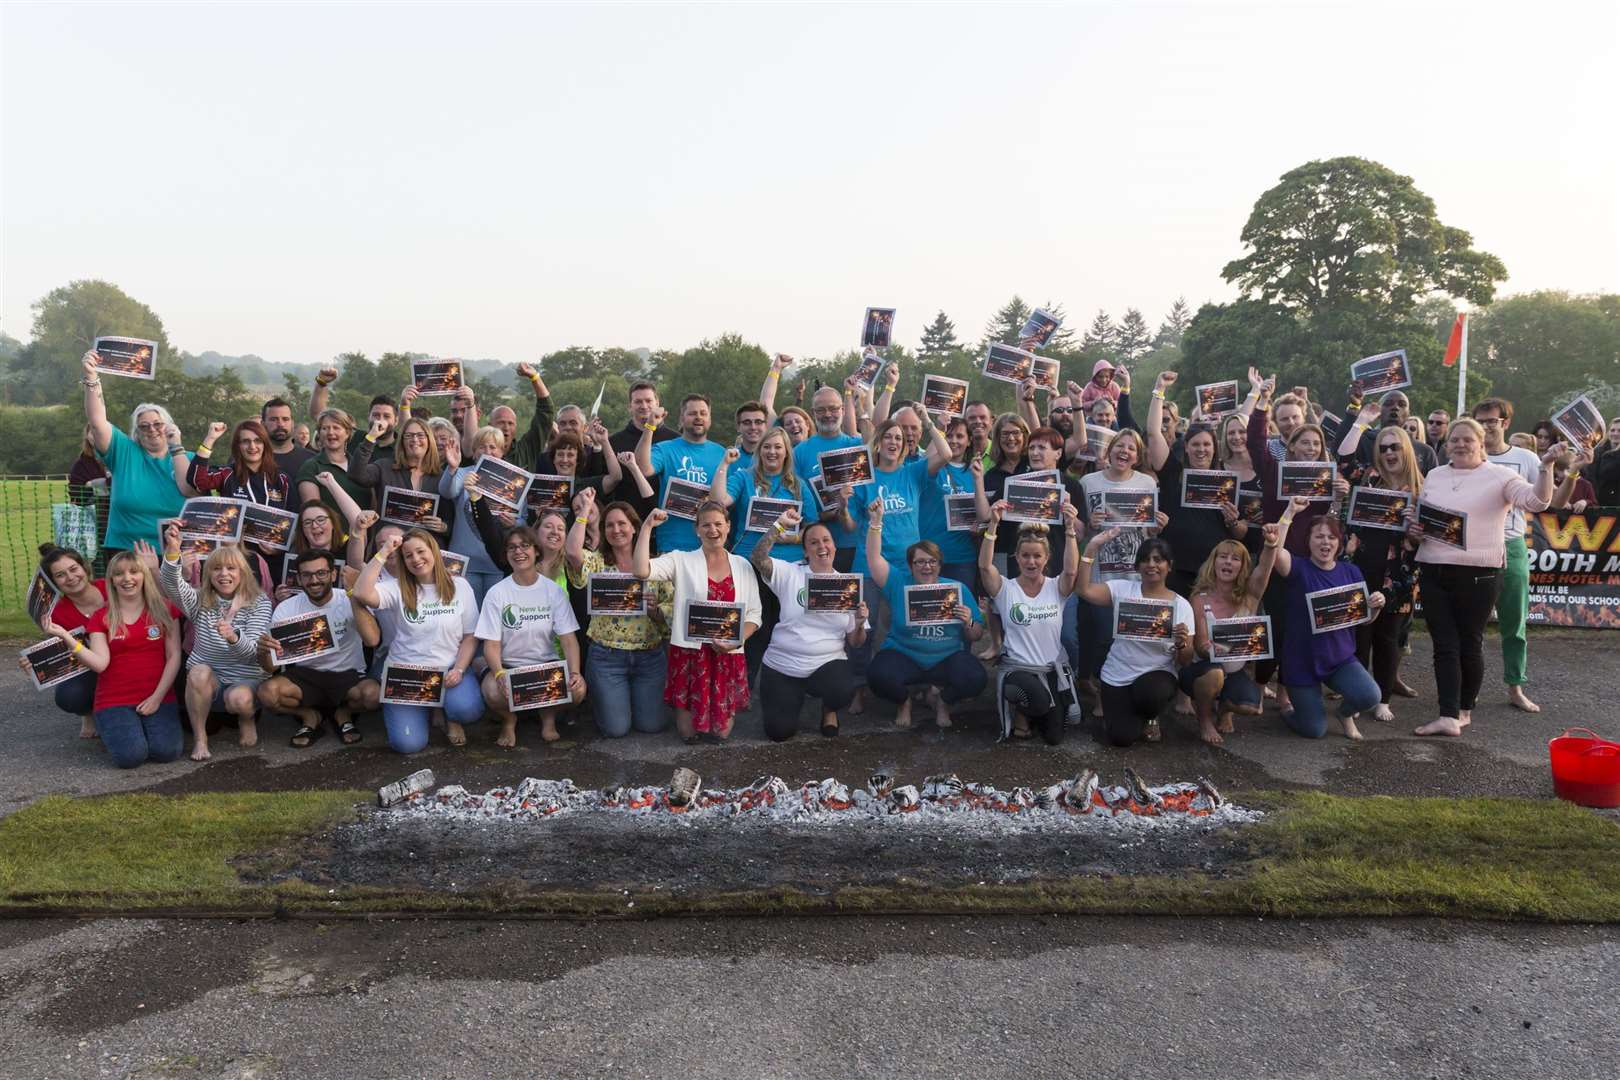 KM Charity of the Year winners can benefit from collaborative events with the KM Charity Team such as the Firewalk Challenge to help boost their profile and fundraising.